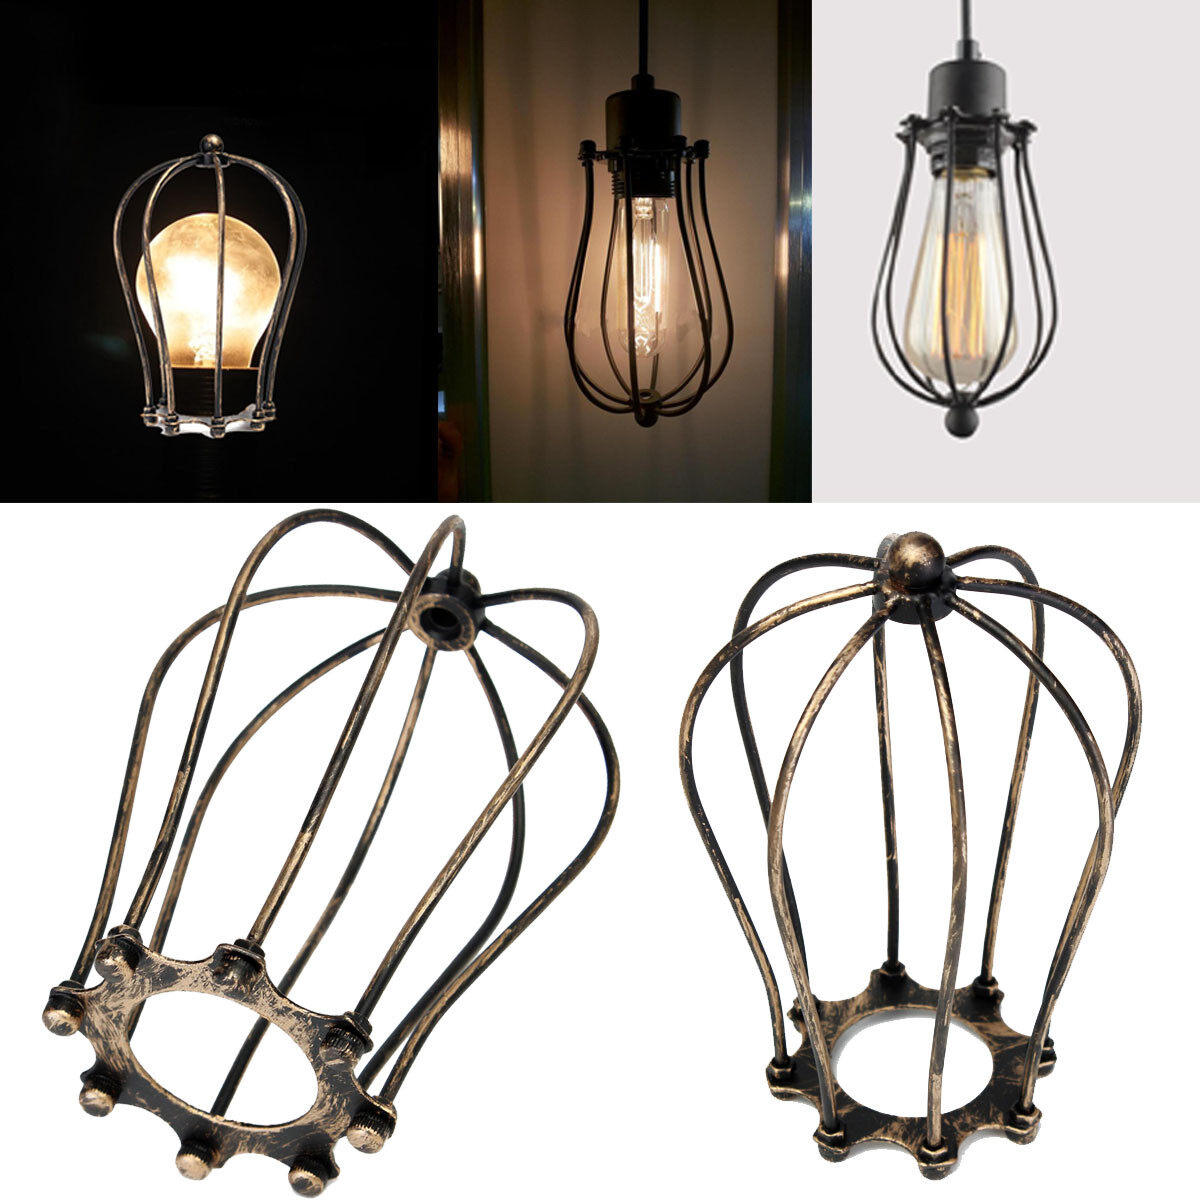 1PC Antique Brass Iron Wire Bulb Cage Lamp Guard Shade Vintage Trouble Light NEW - intl